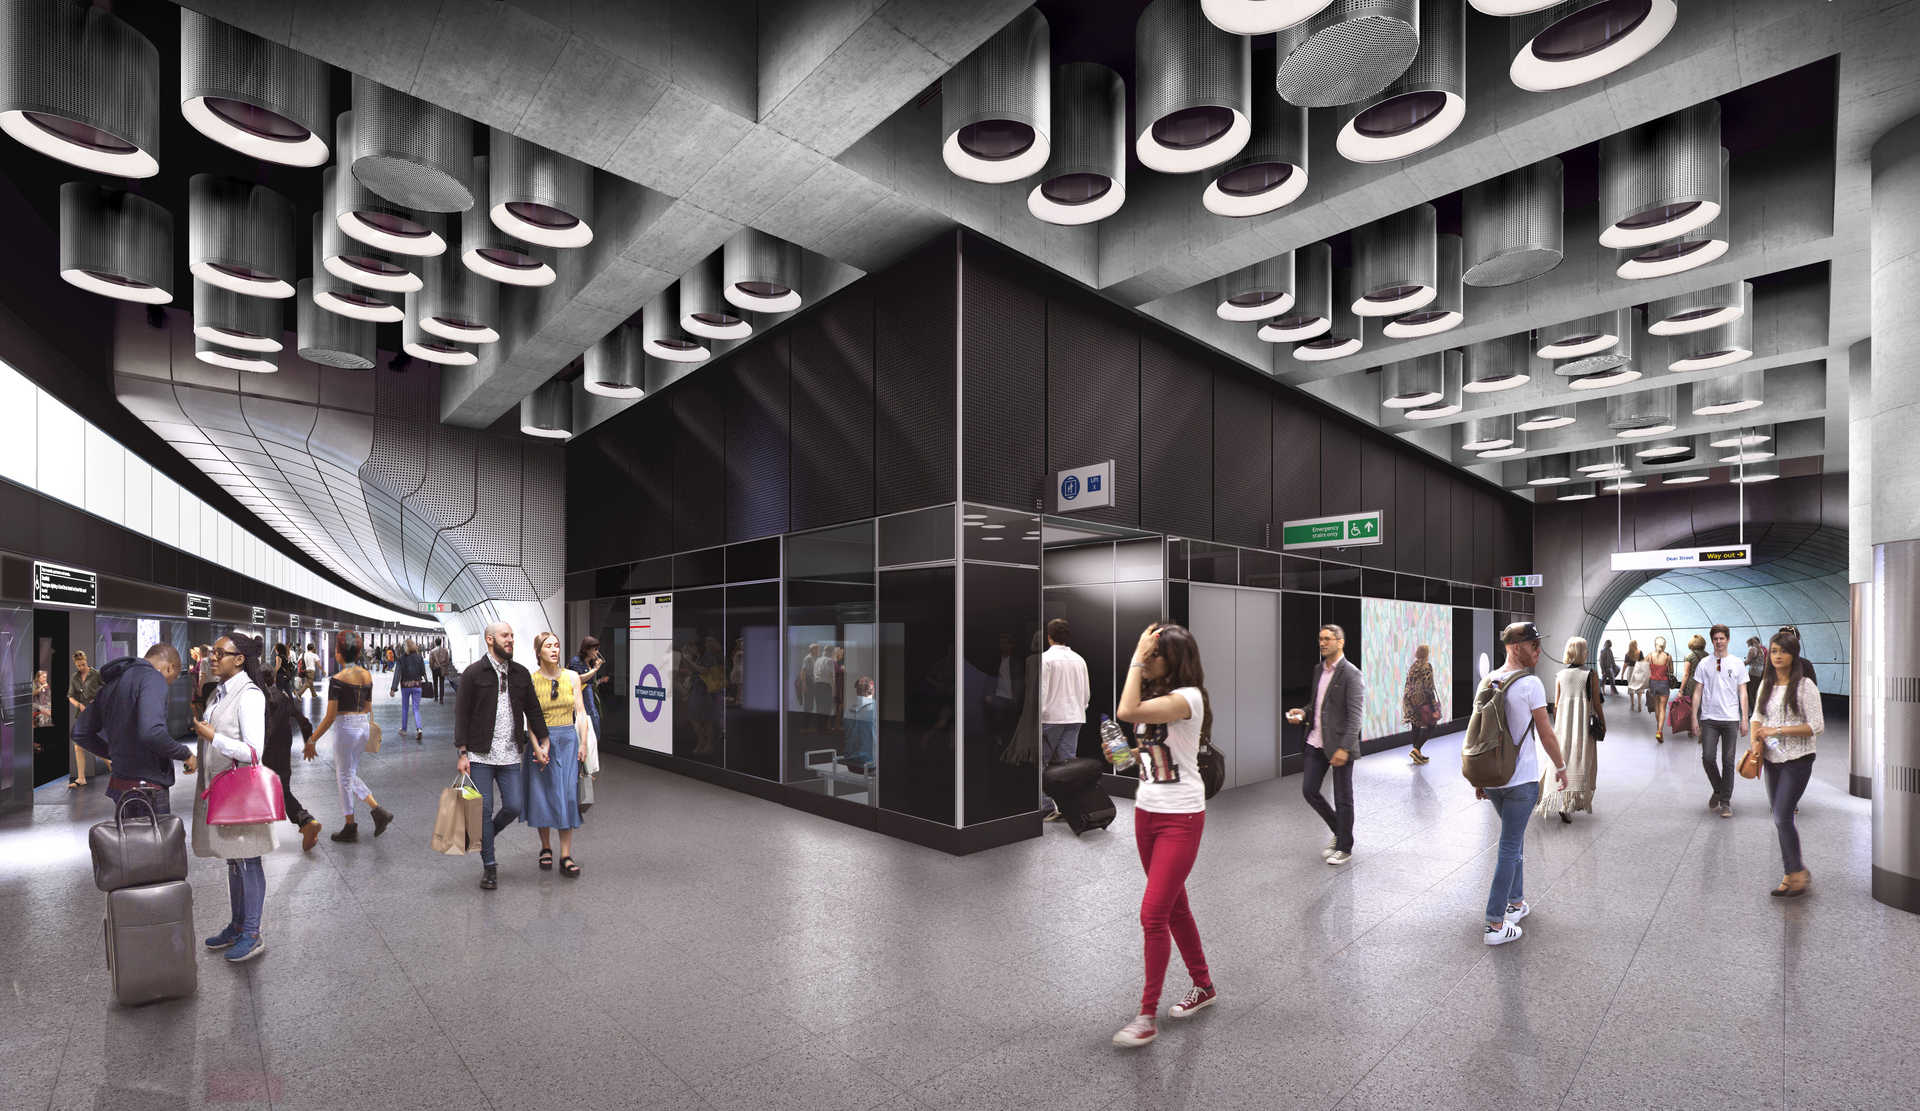 stations art and public space crossrail s approach to design